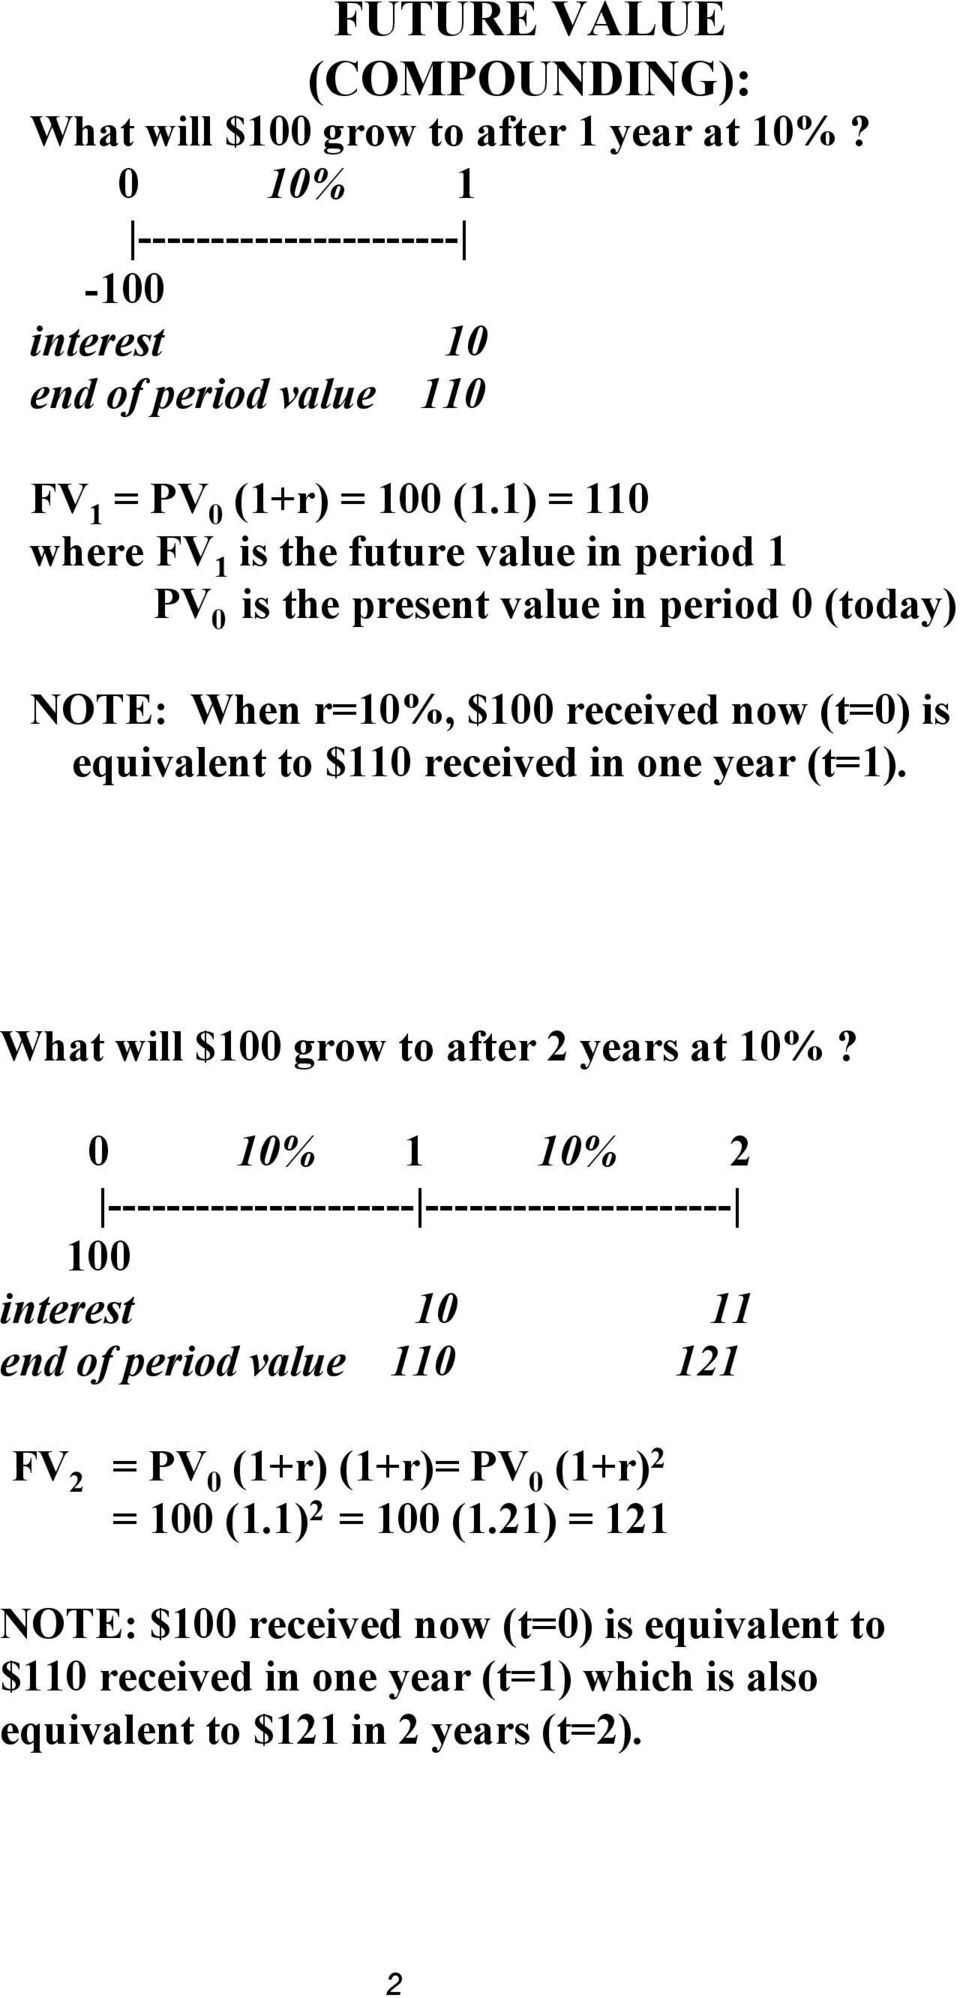 year (t=1). What will $100 grow to after 2 years at 10%?